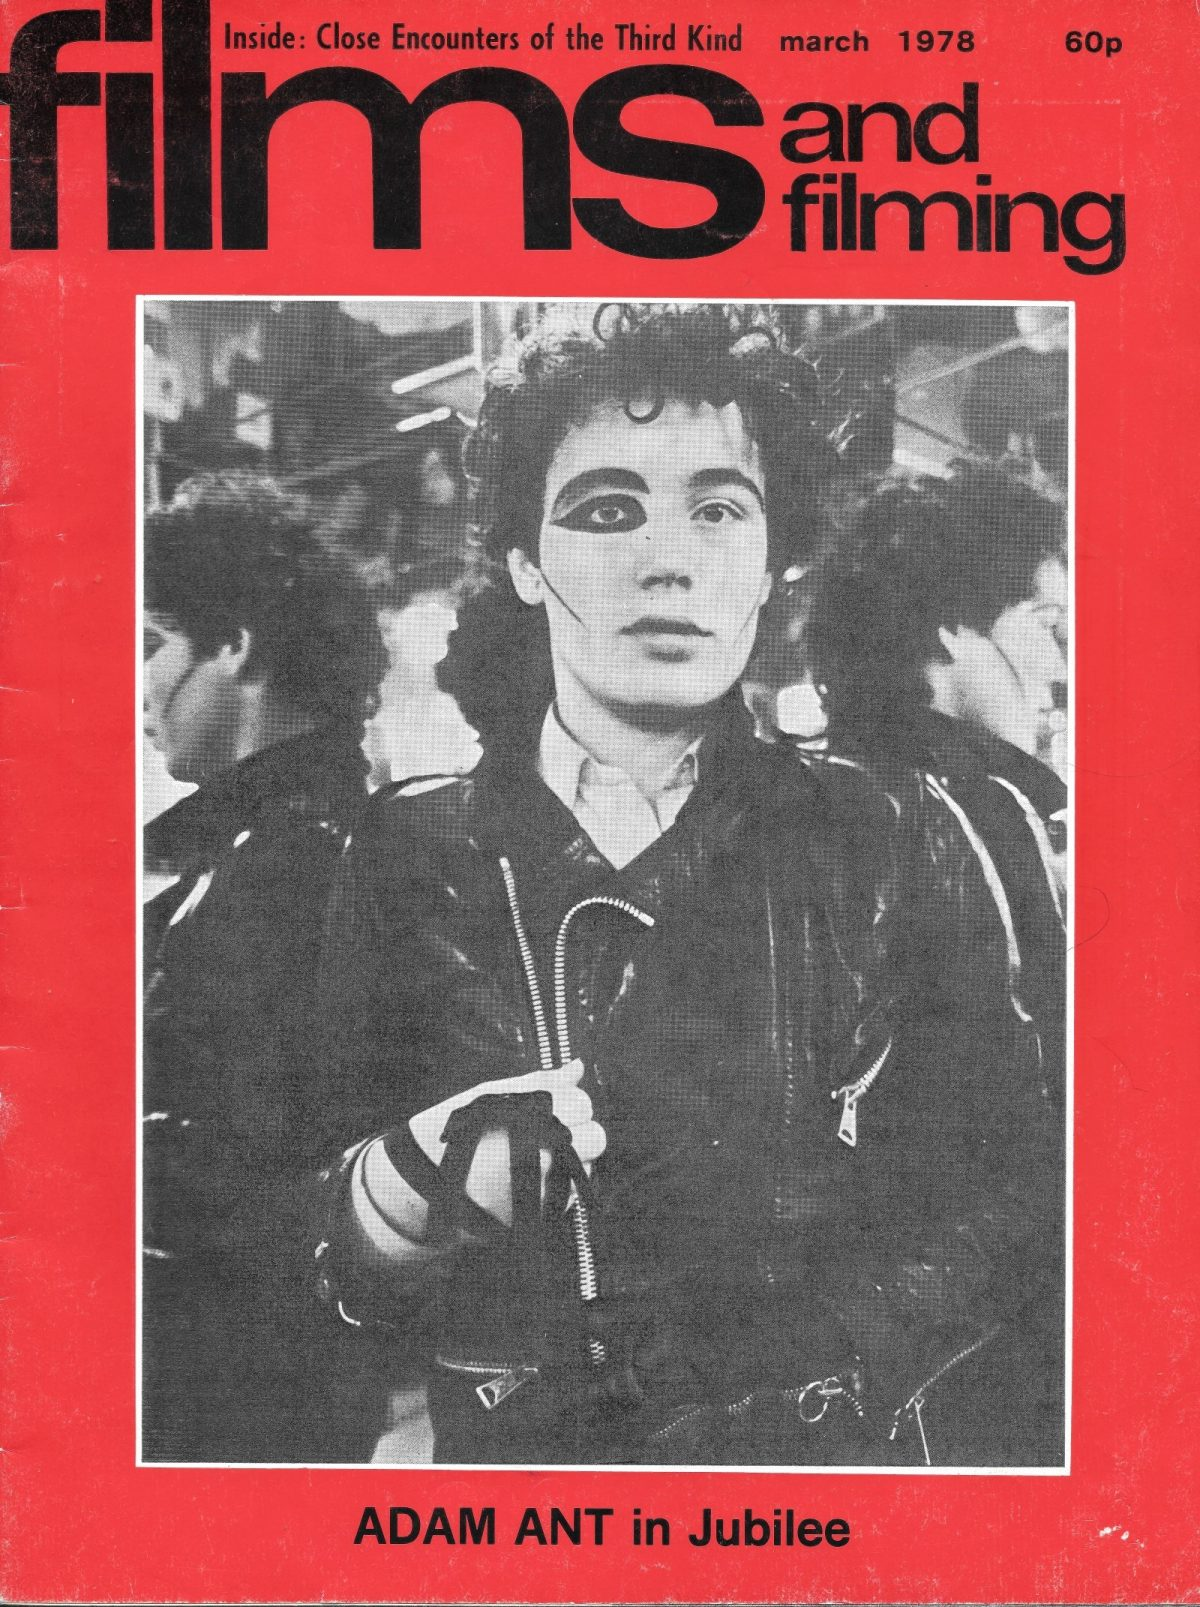 Derek Jarman, Adam Ant, Jubilee, Films and Filming, movies